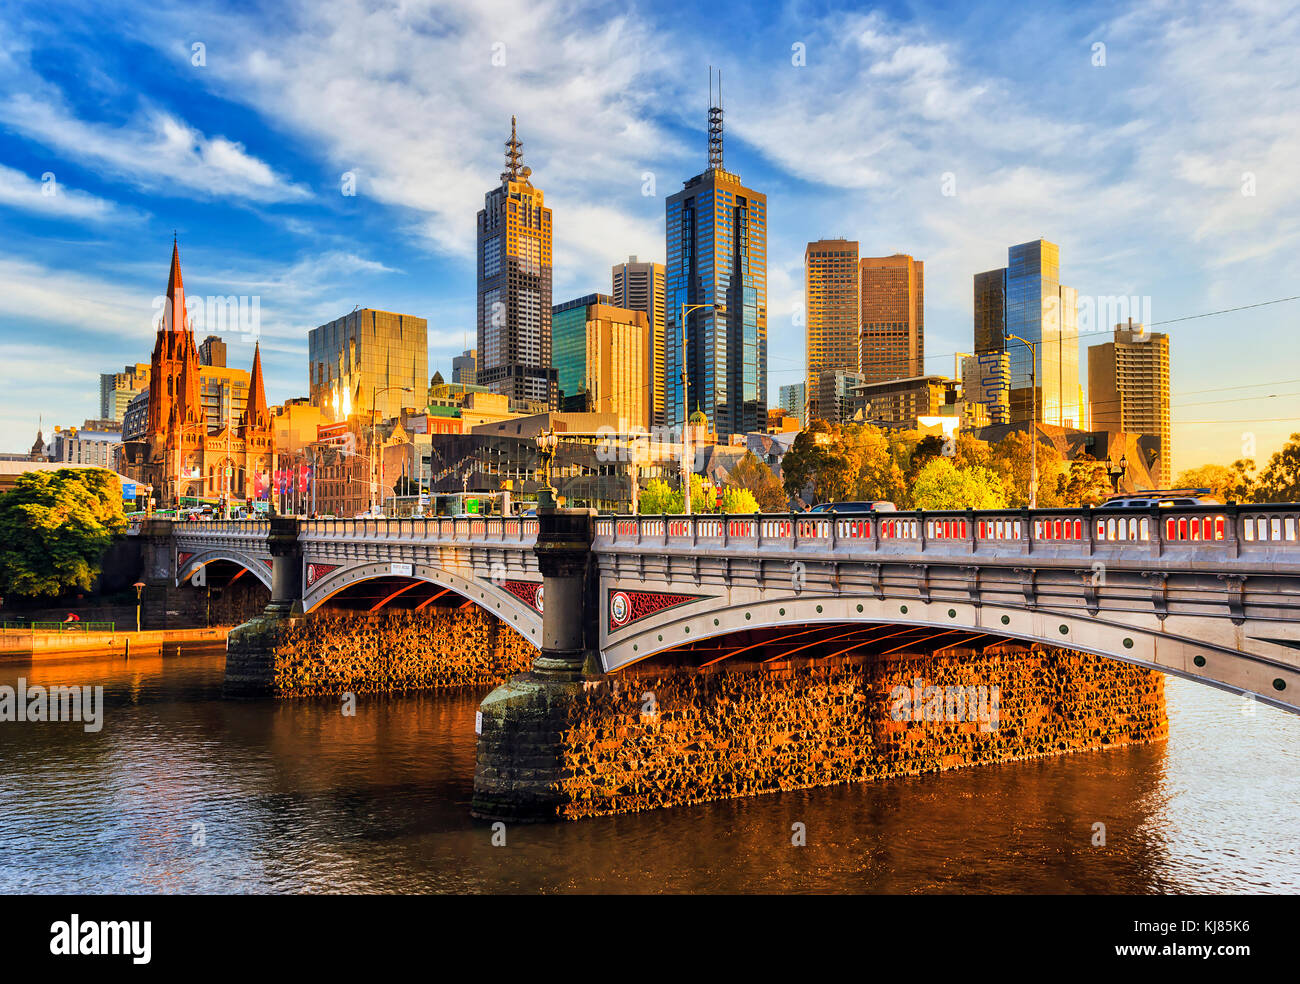 Warm morning light on high-rise towers in Melbourne CBD above Princes bridge across Yarra river. - Stock Image